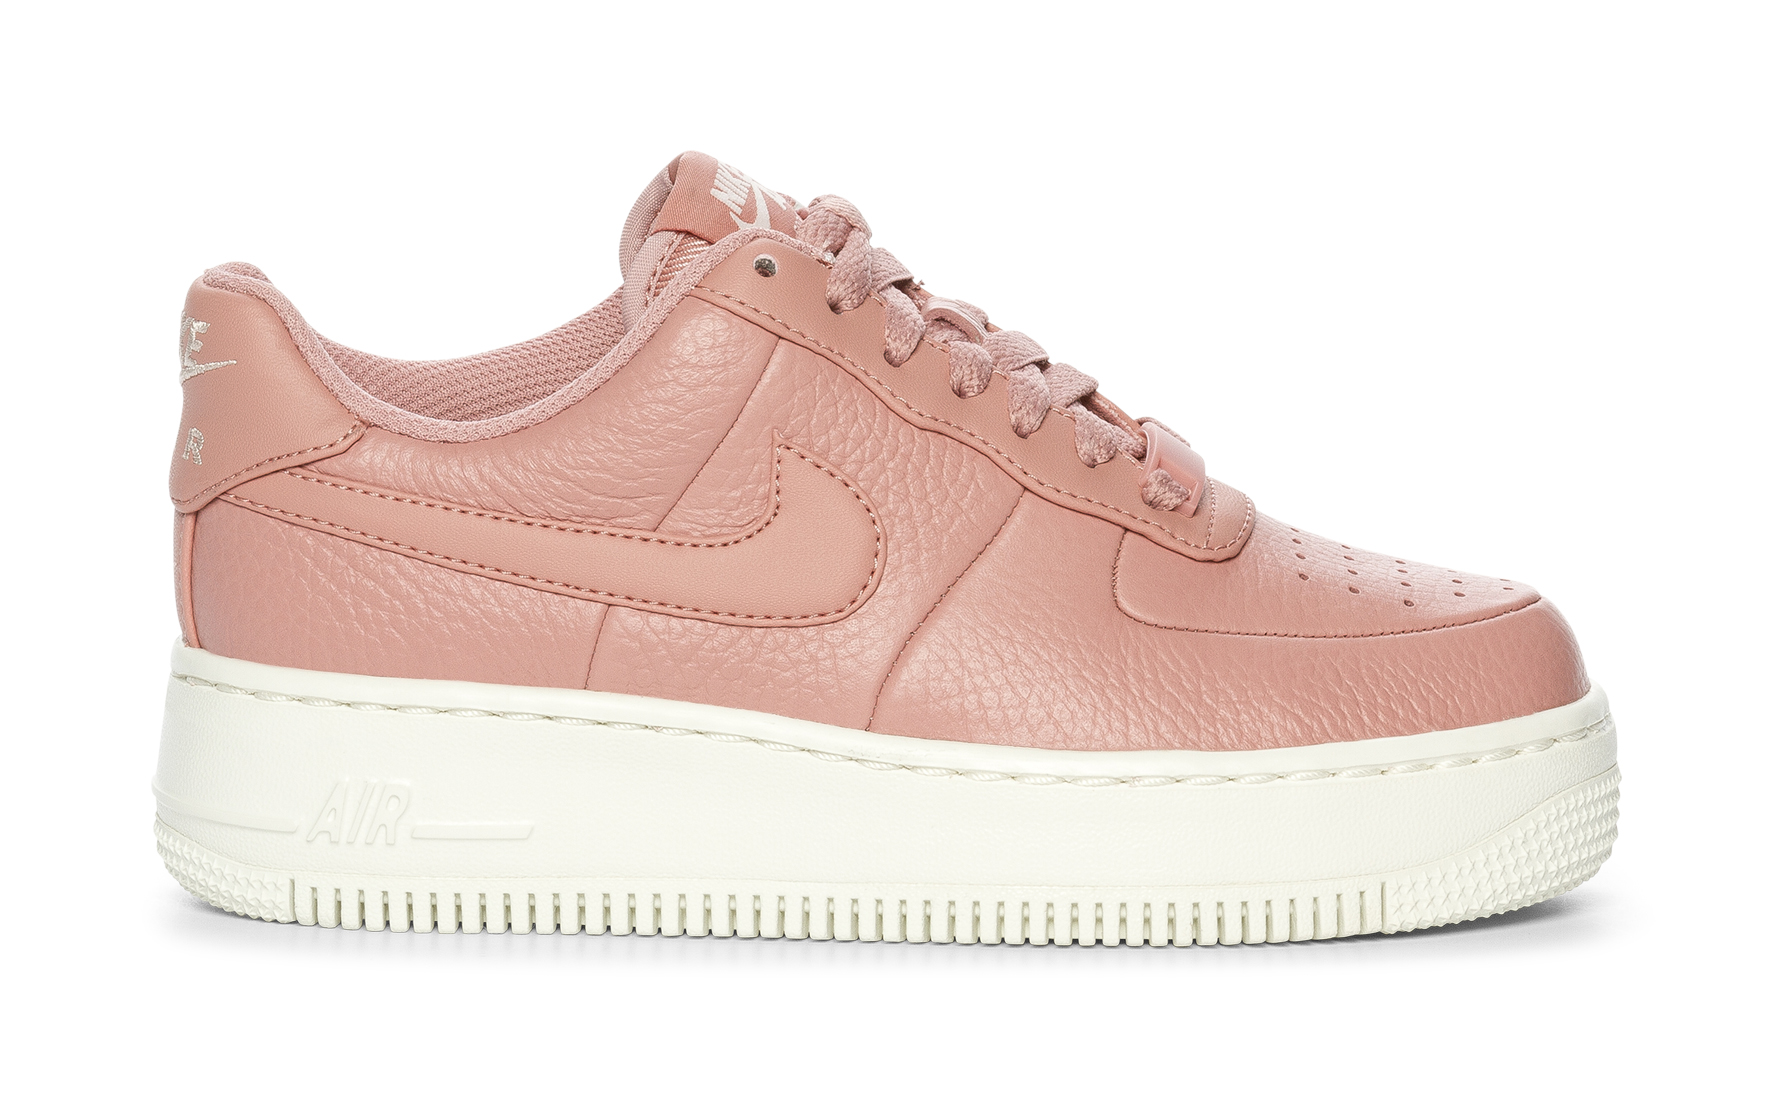 on sale e70a6 38445 Nike Air Force 1 Upstep - Rosa 309790 feetfirst.se